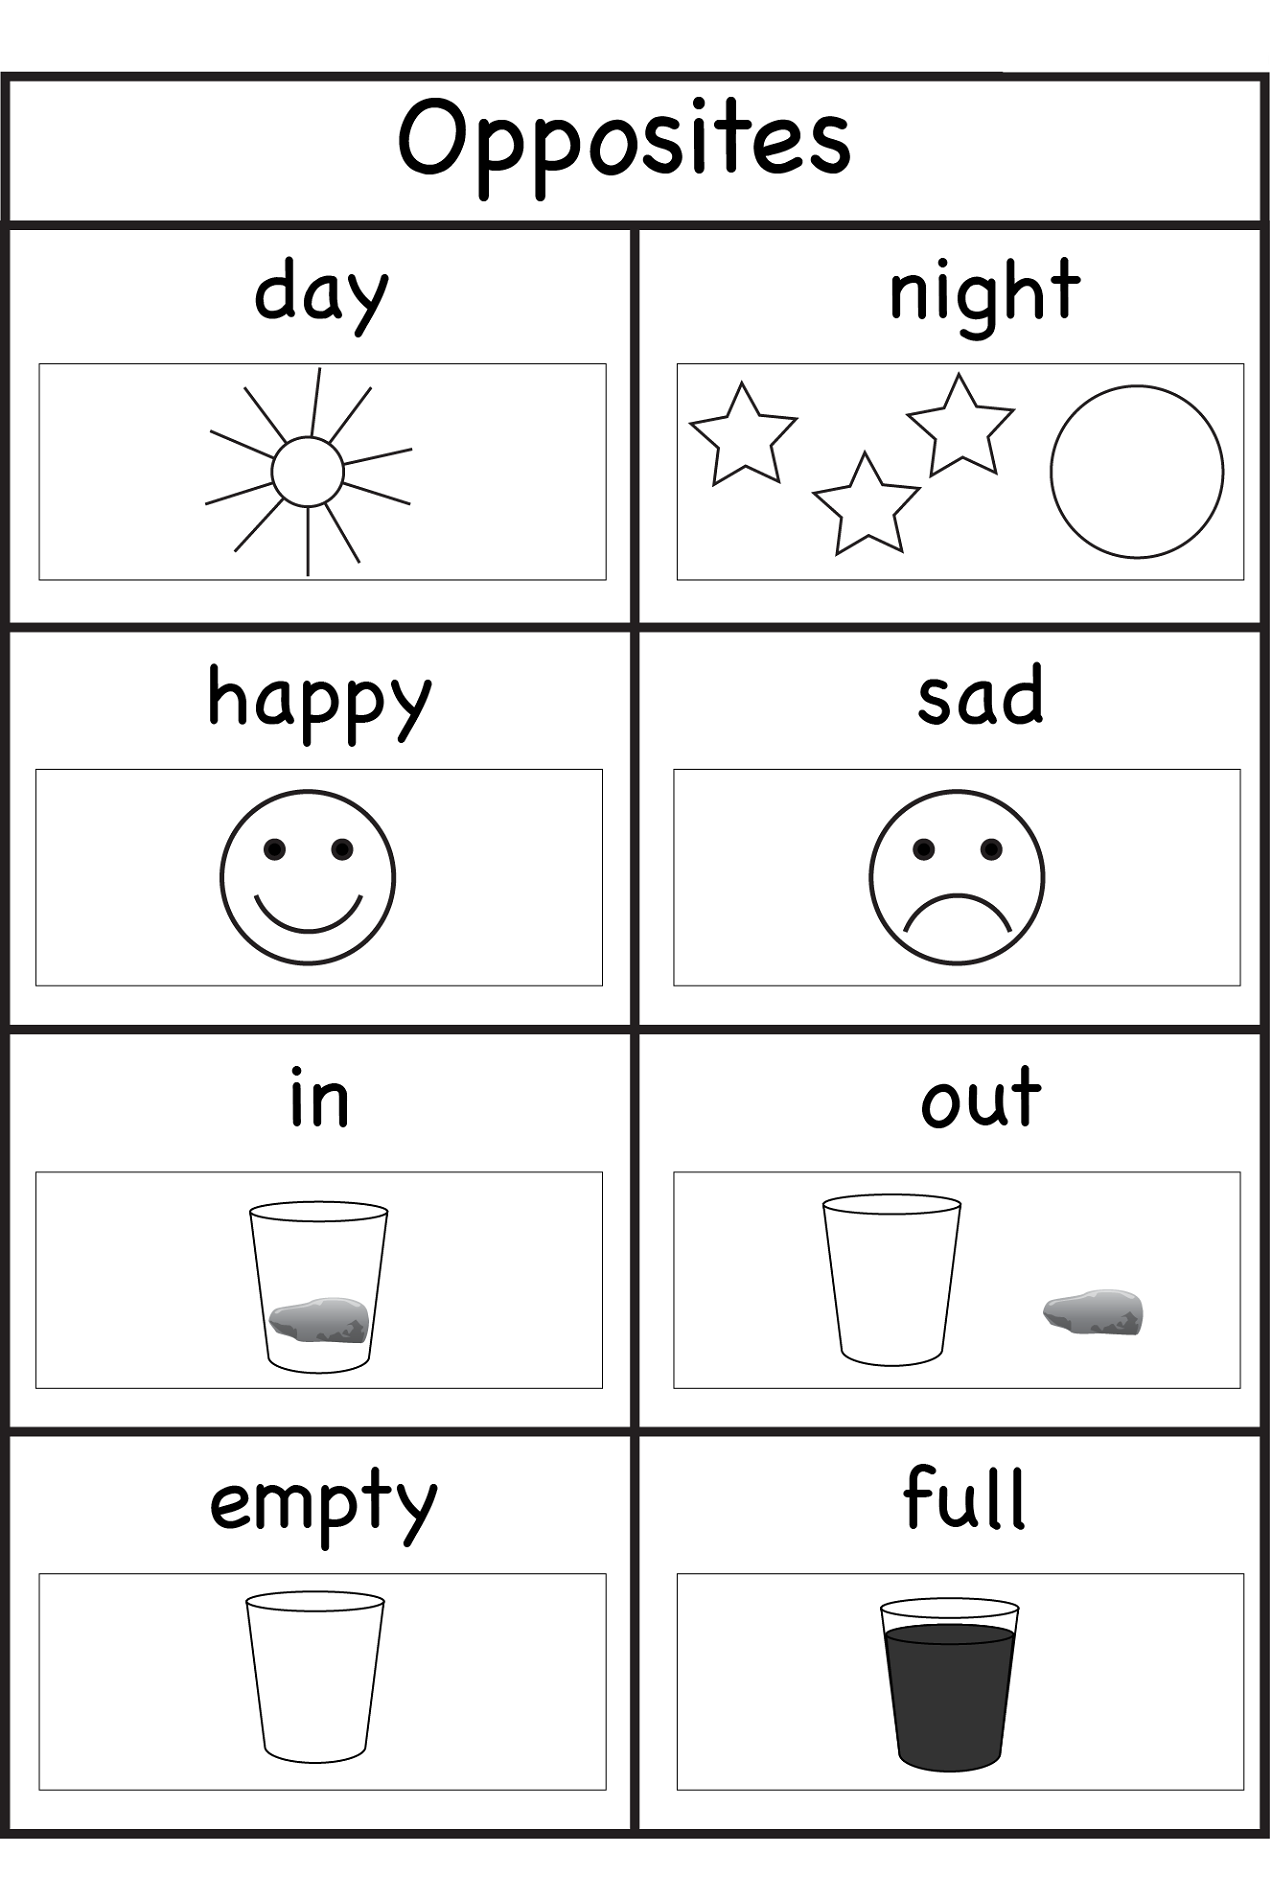 Worksheets For 3 Years Old Kids Activity Shelter Di